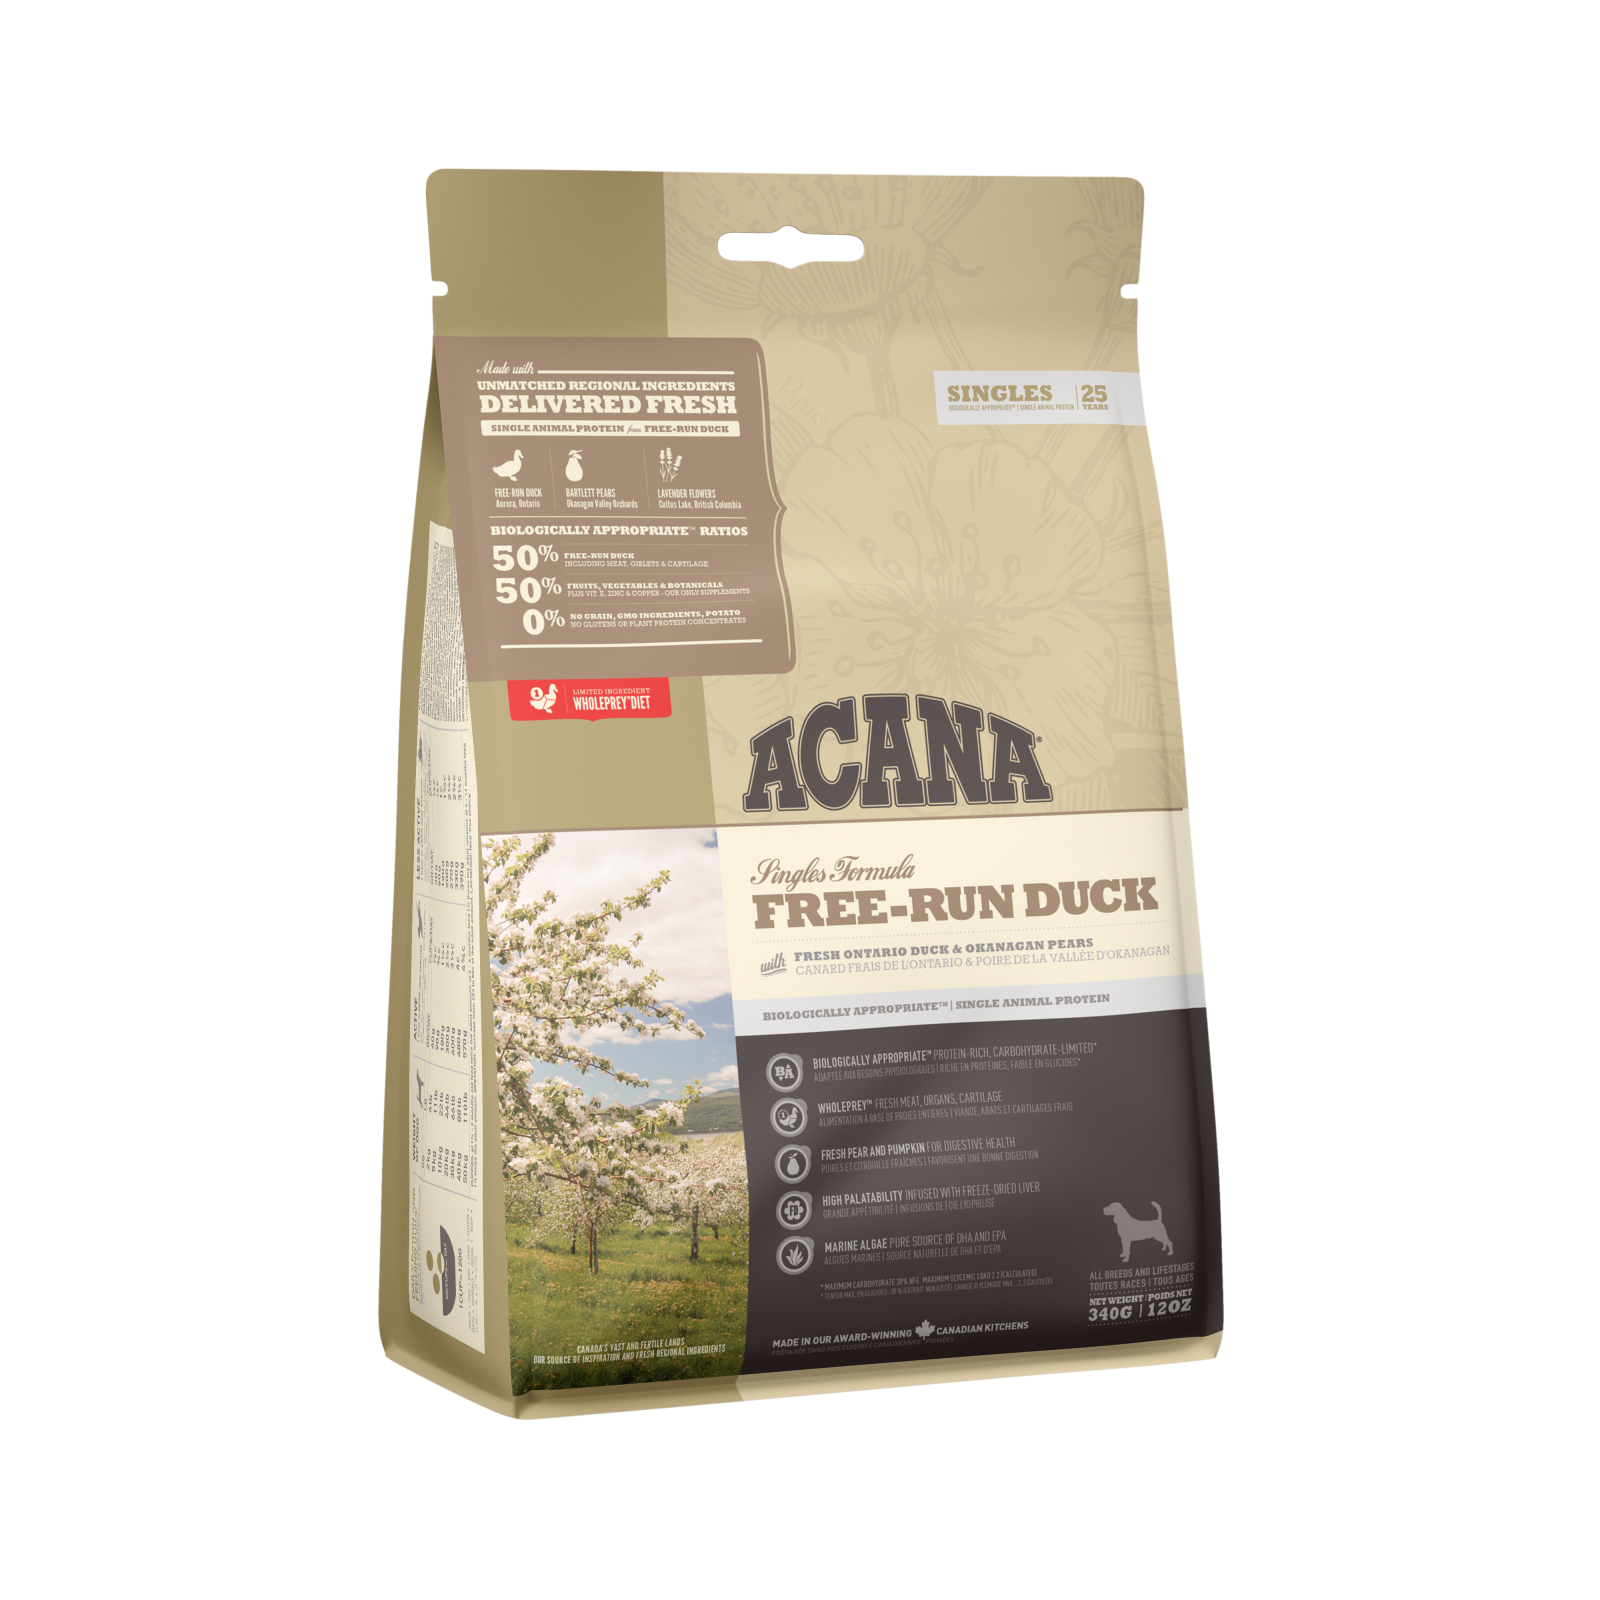 Acana Acana Singles Free-Run Duck Dry Dog Food